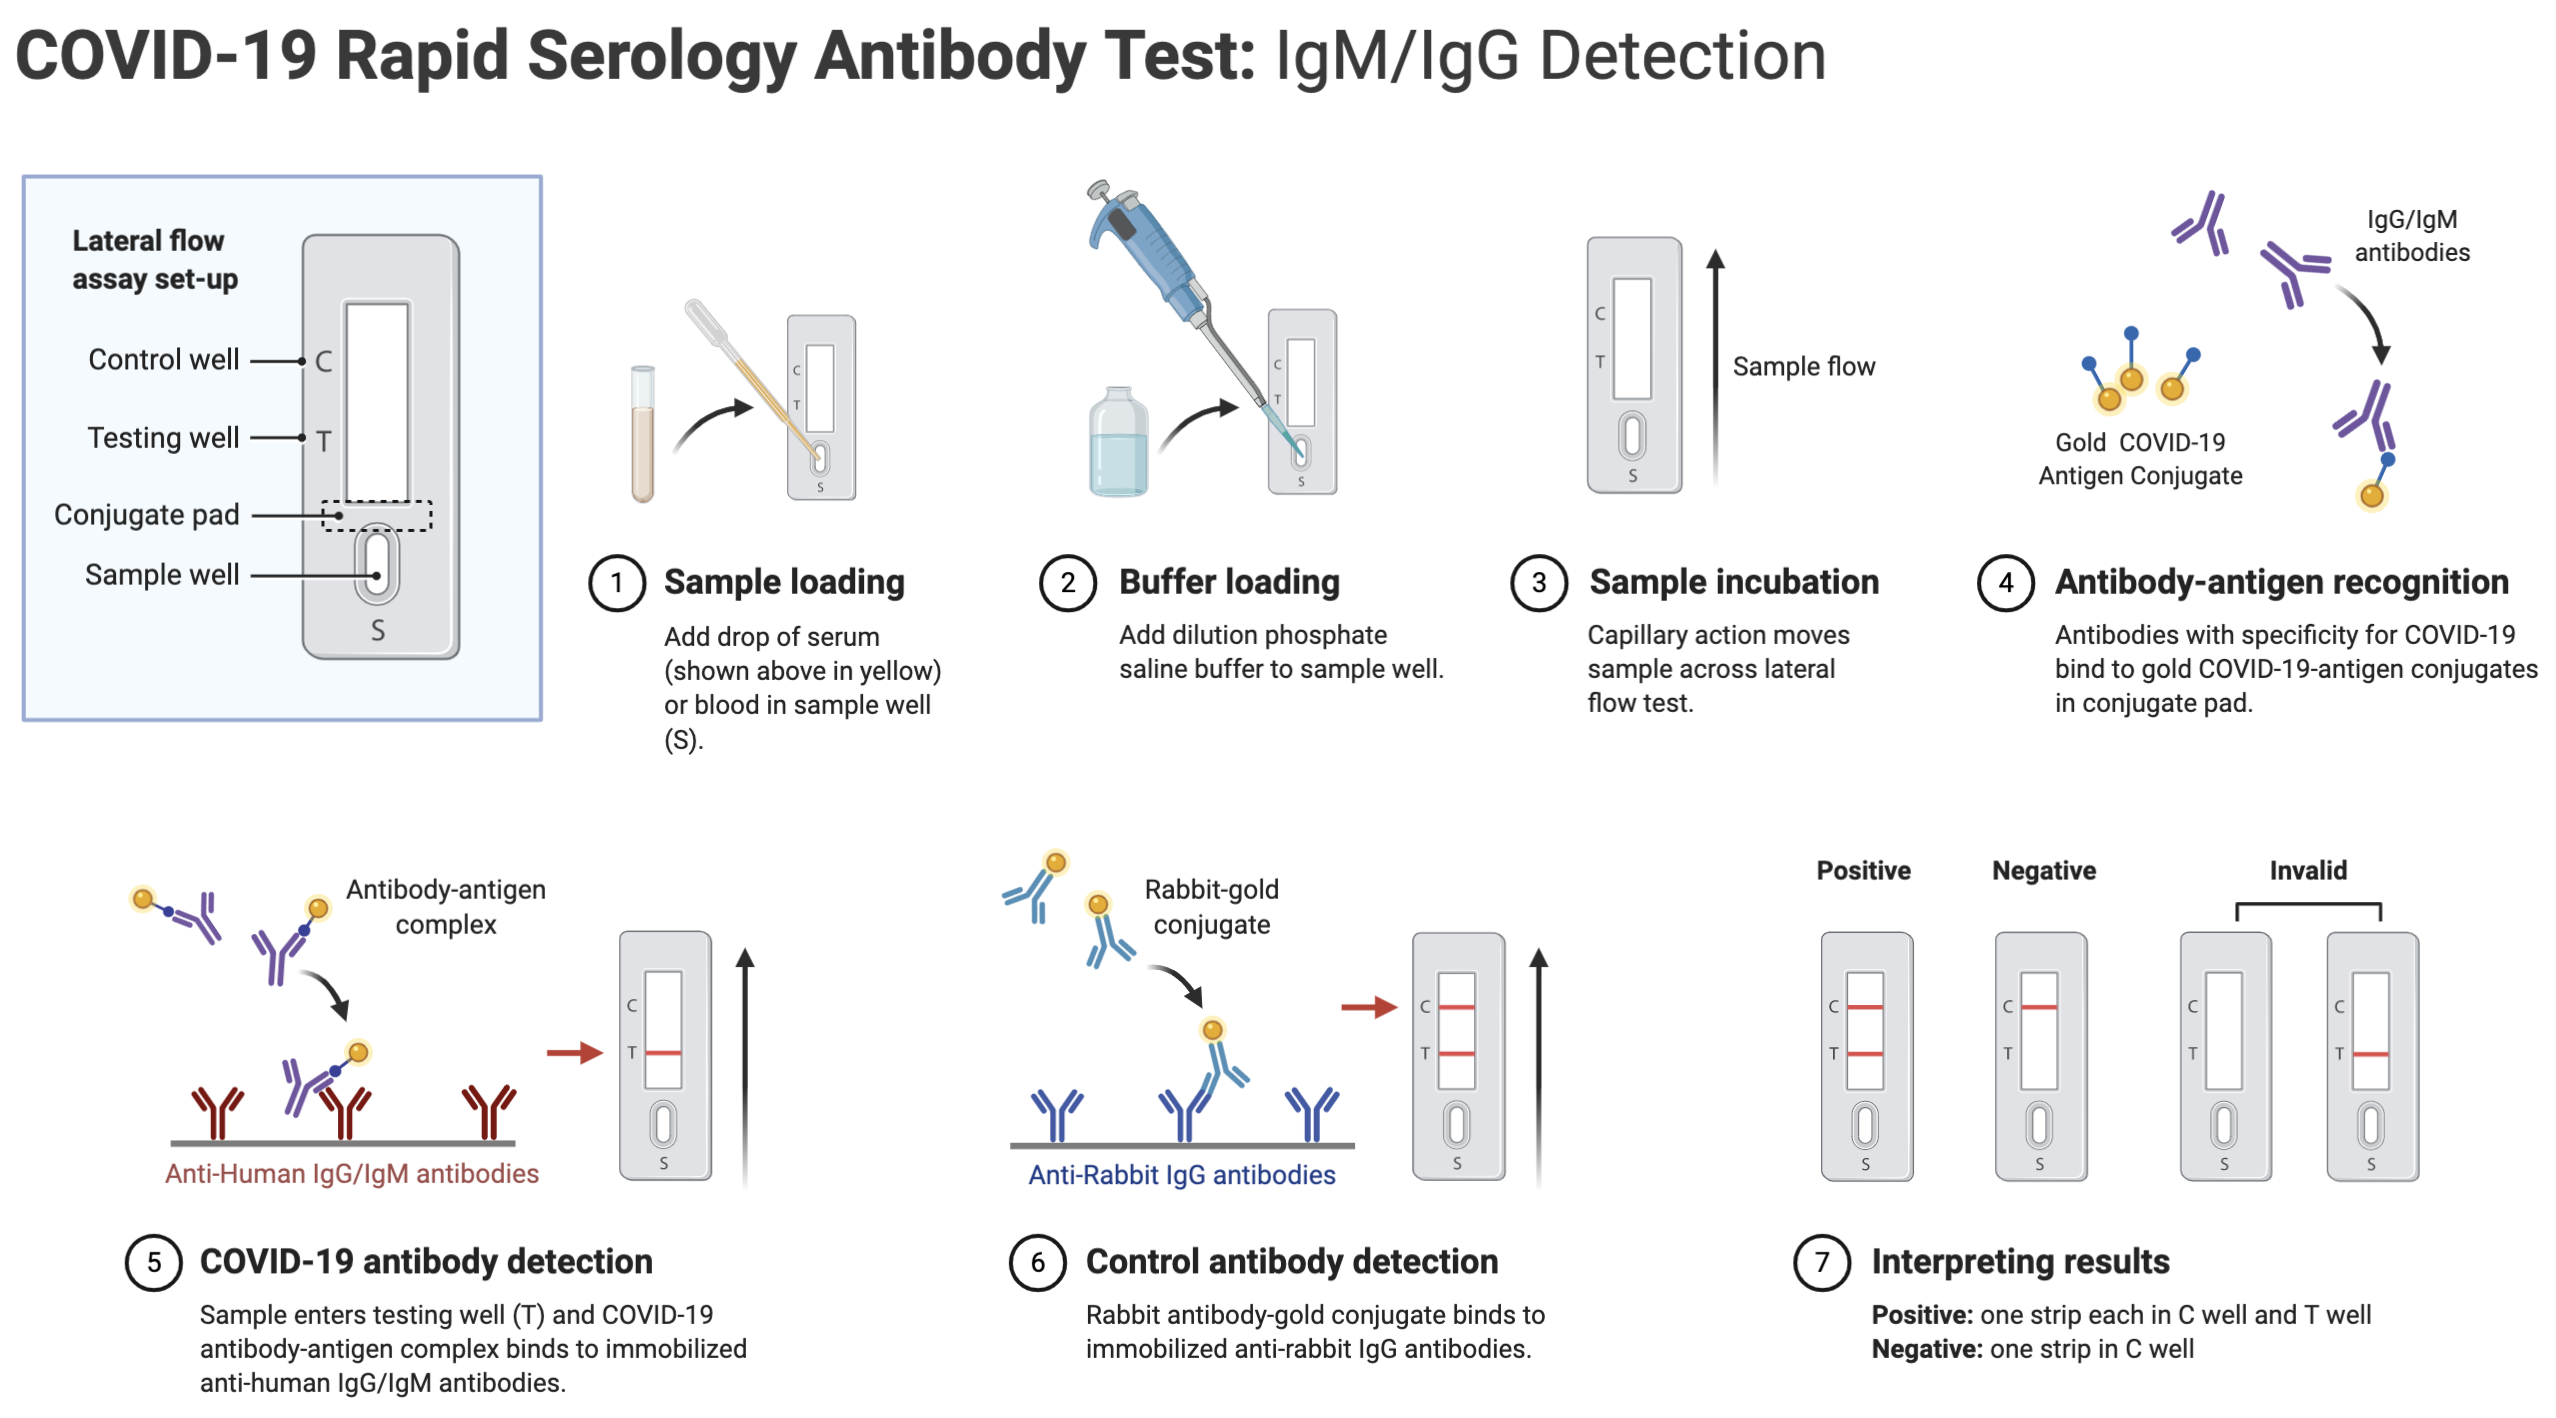 COVID-19 Rapid Serology Antibody Test: IgM/IgG Detection